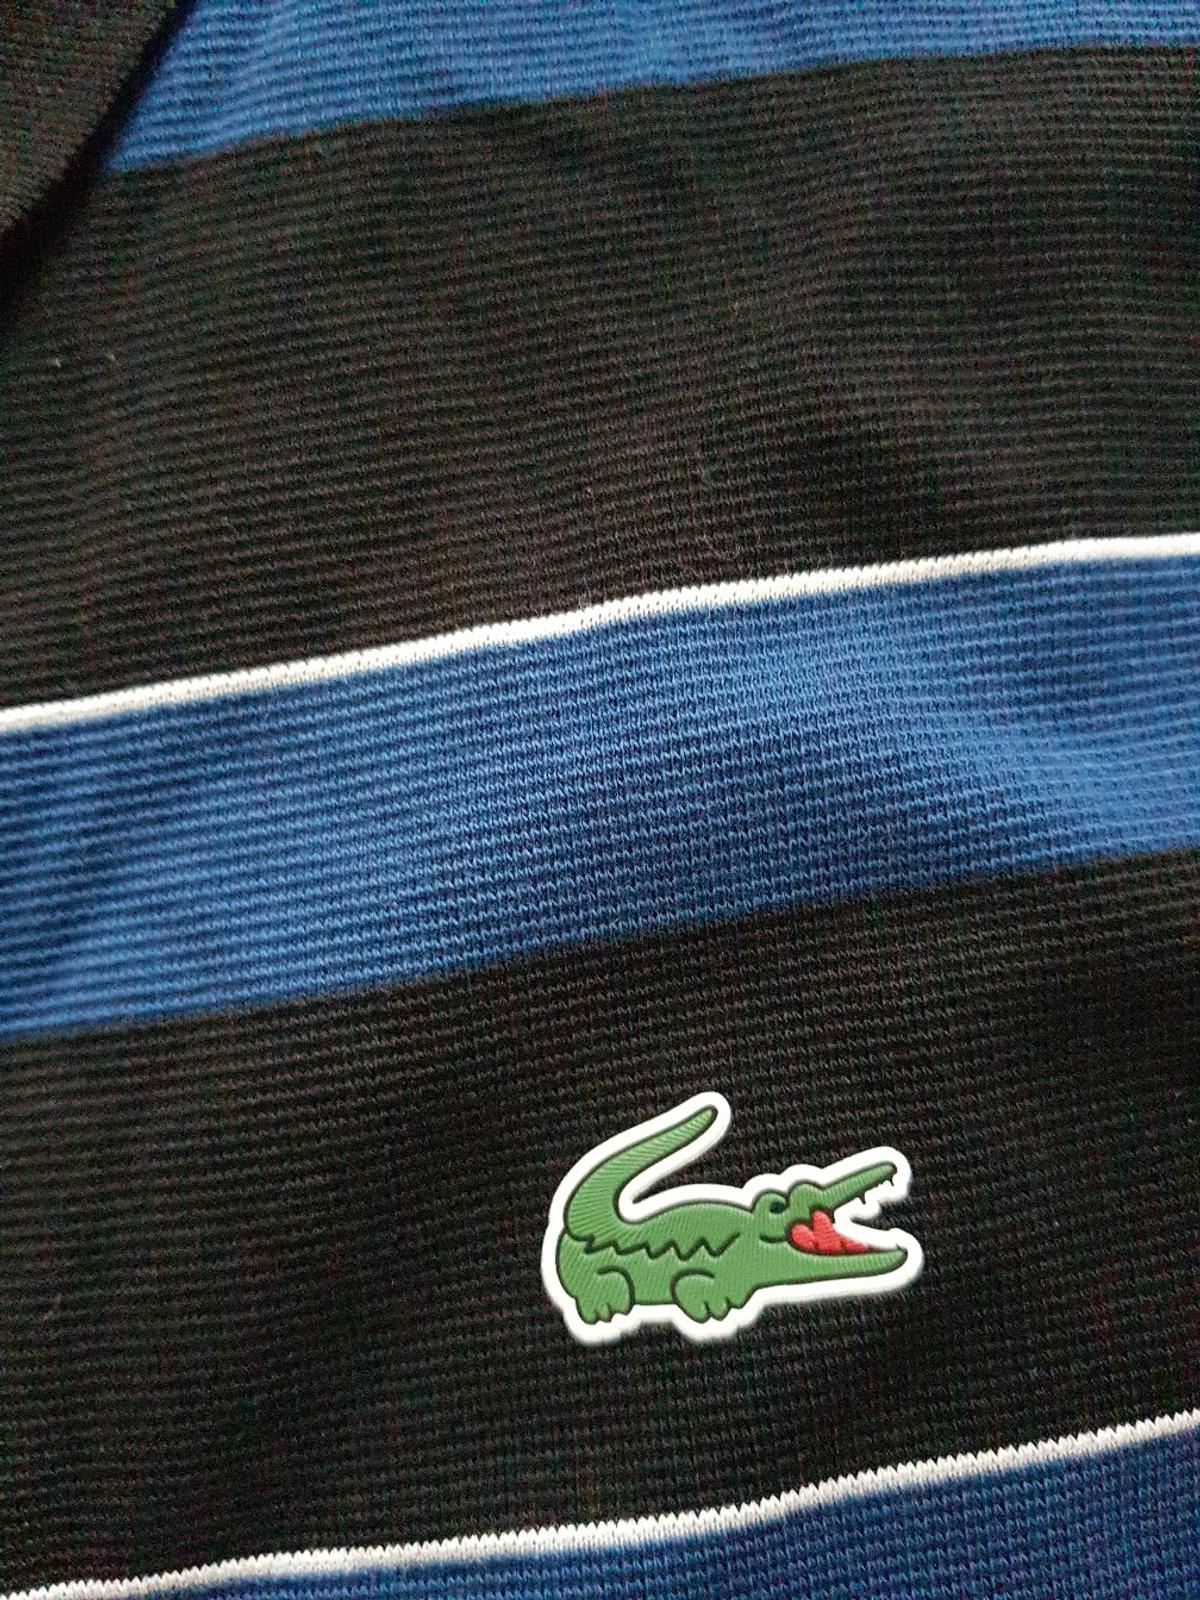 Lacoste polo Brand New Beautifull Condition Never beeen worn!